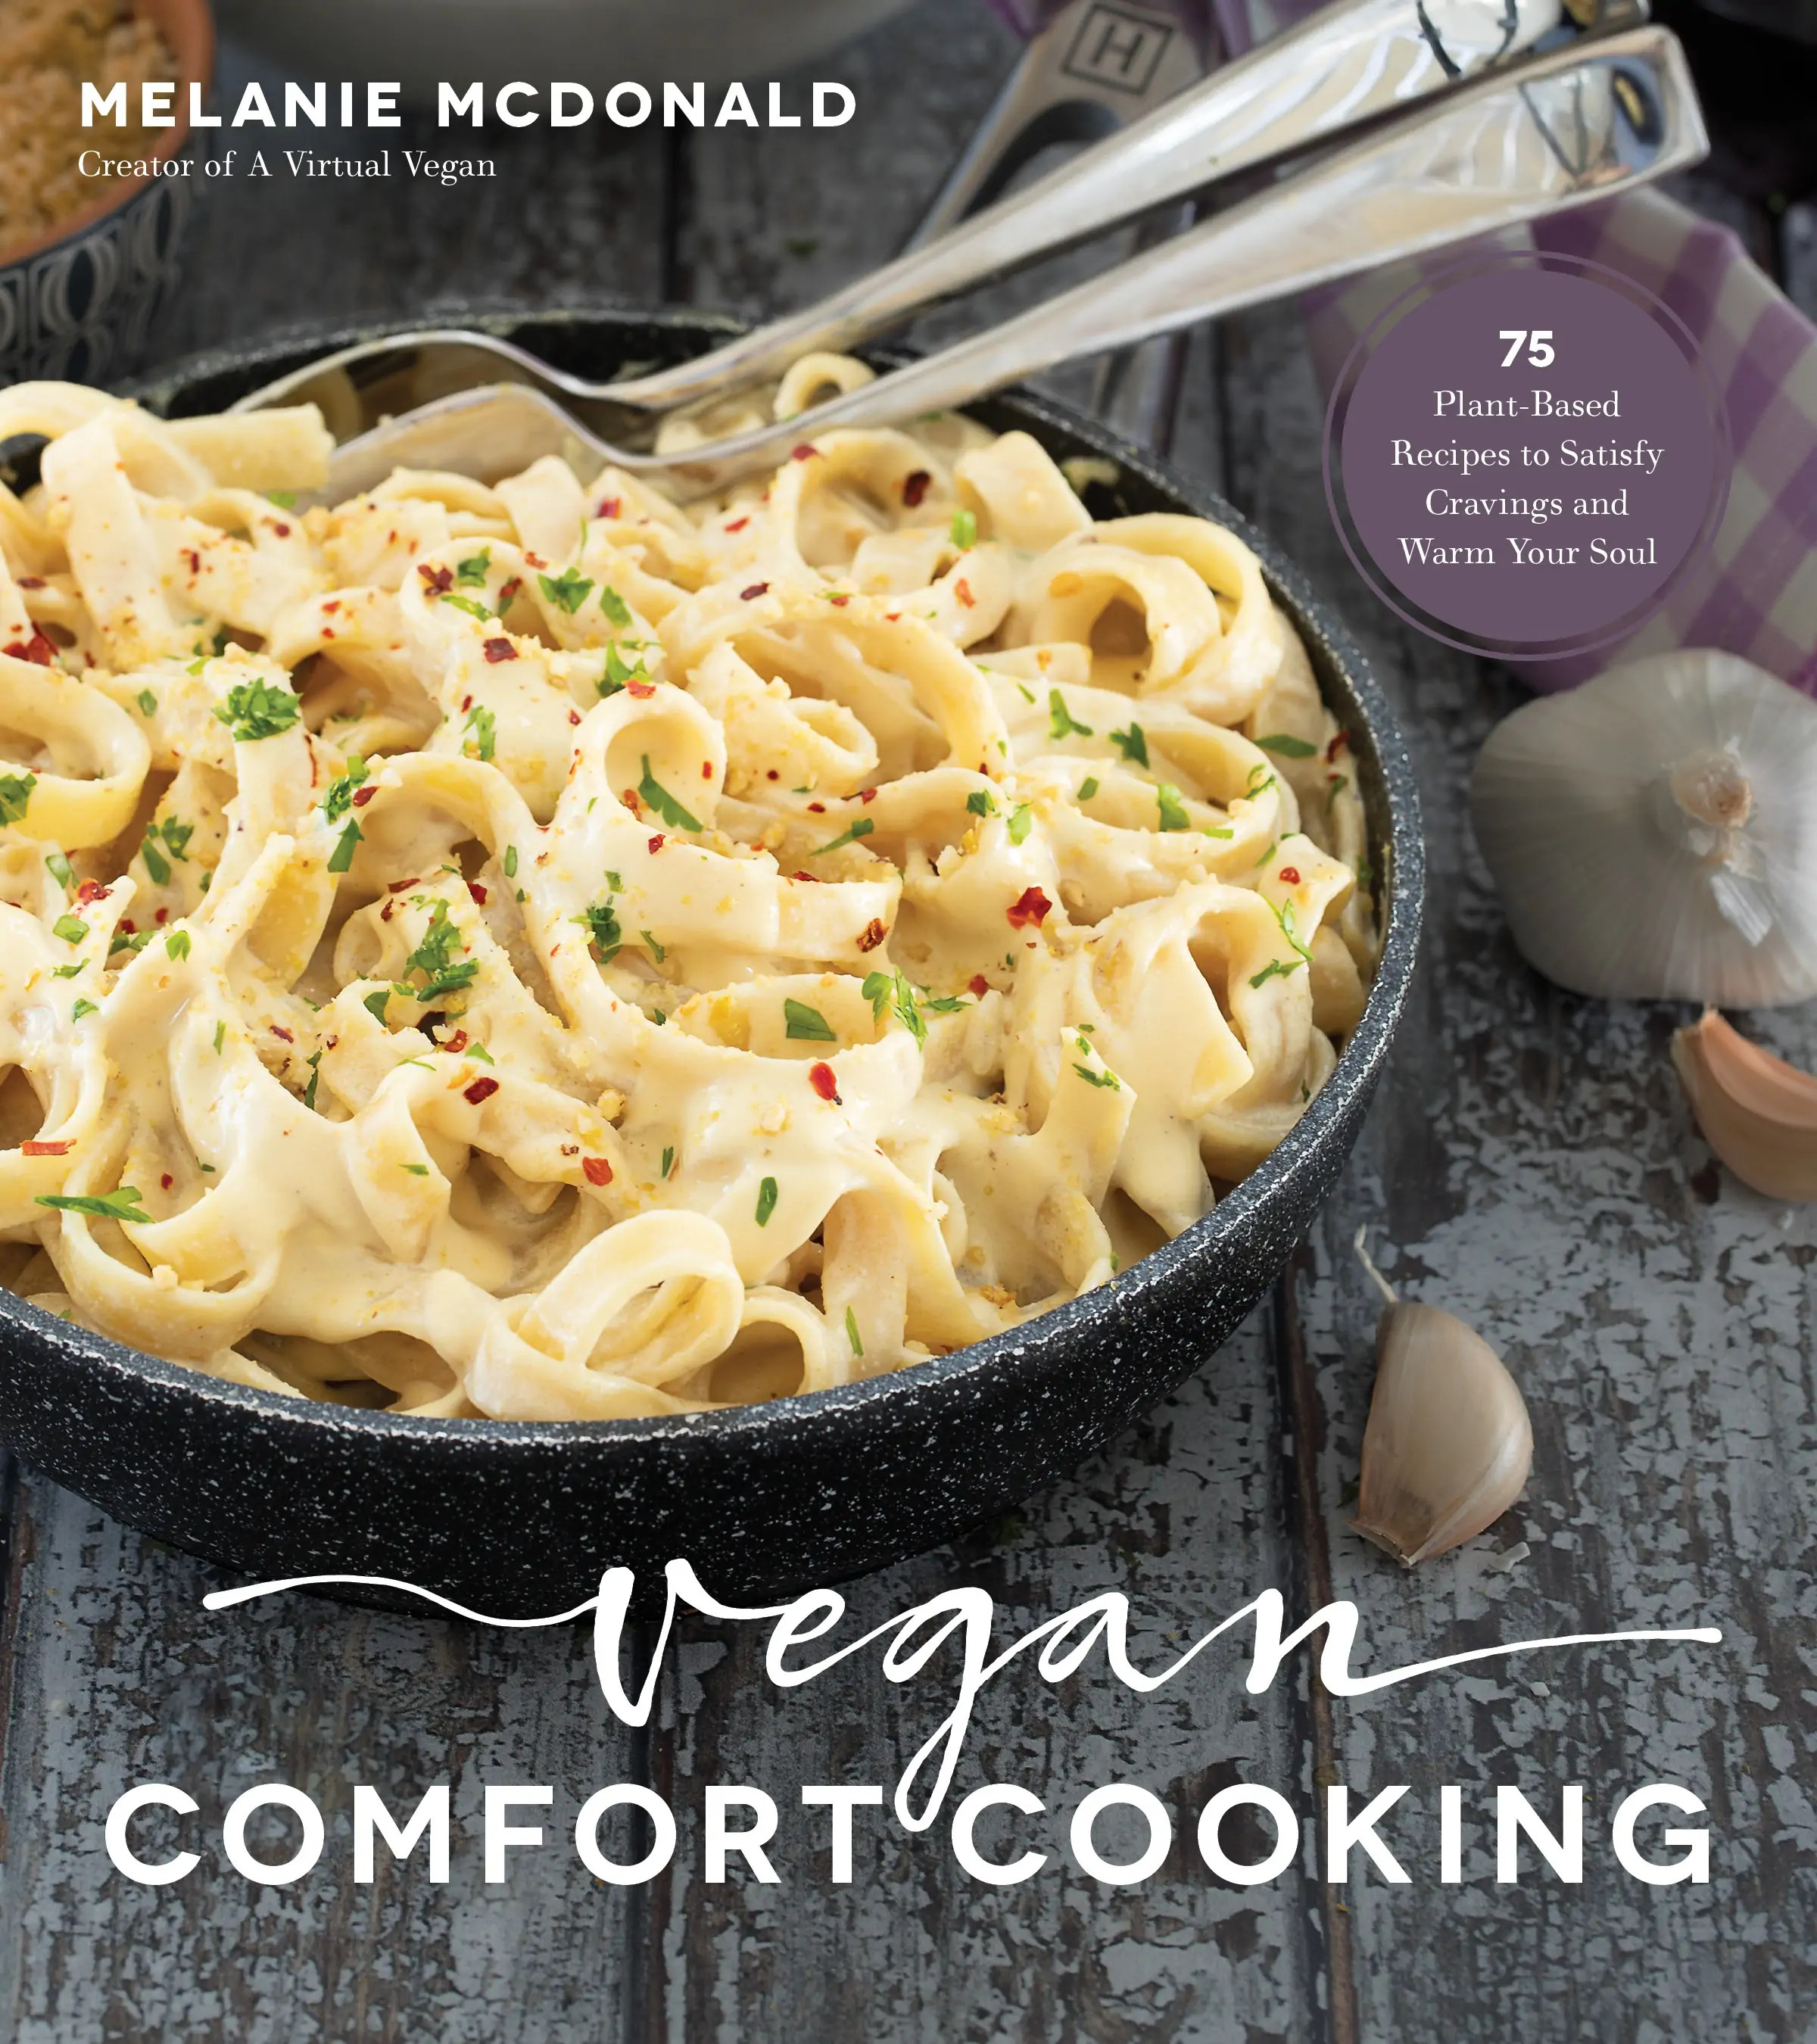 Vegan Comfort Cooking by Melanie MacDonald avirtualvegan.com